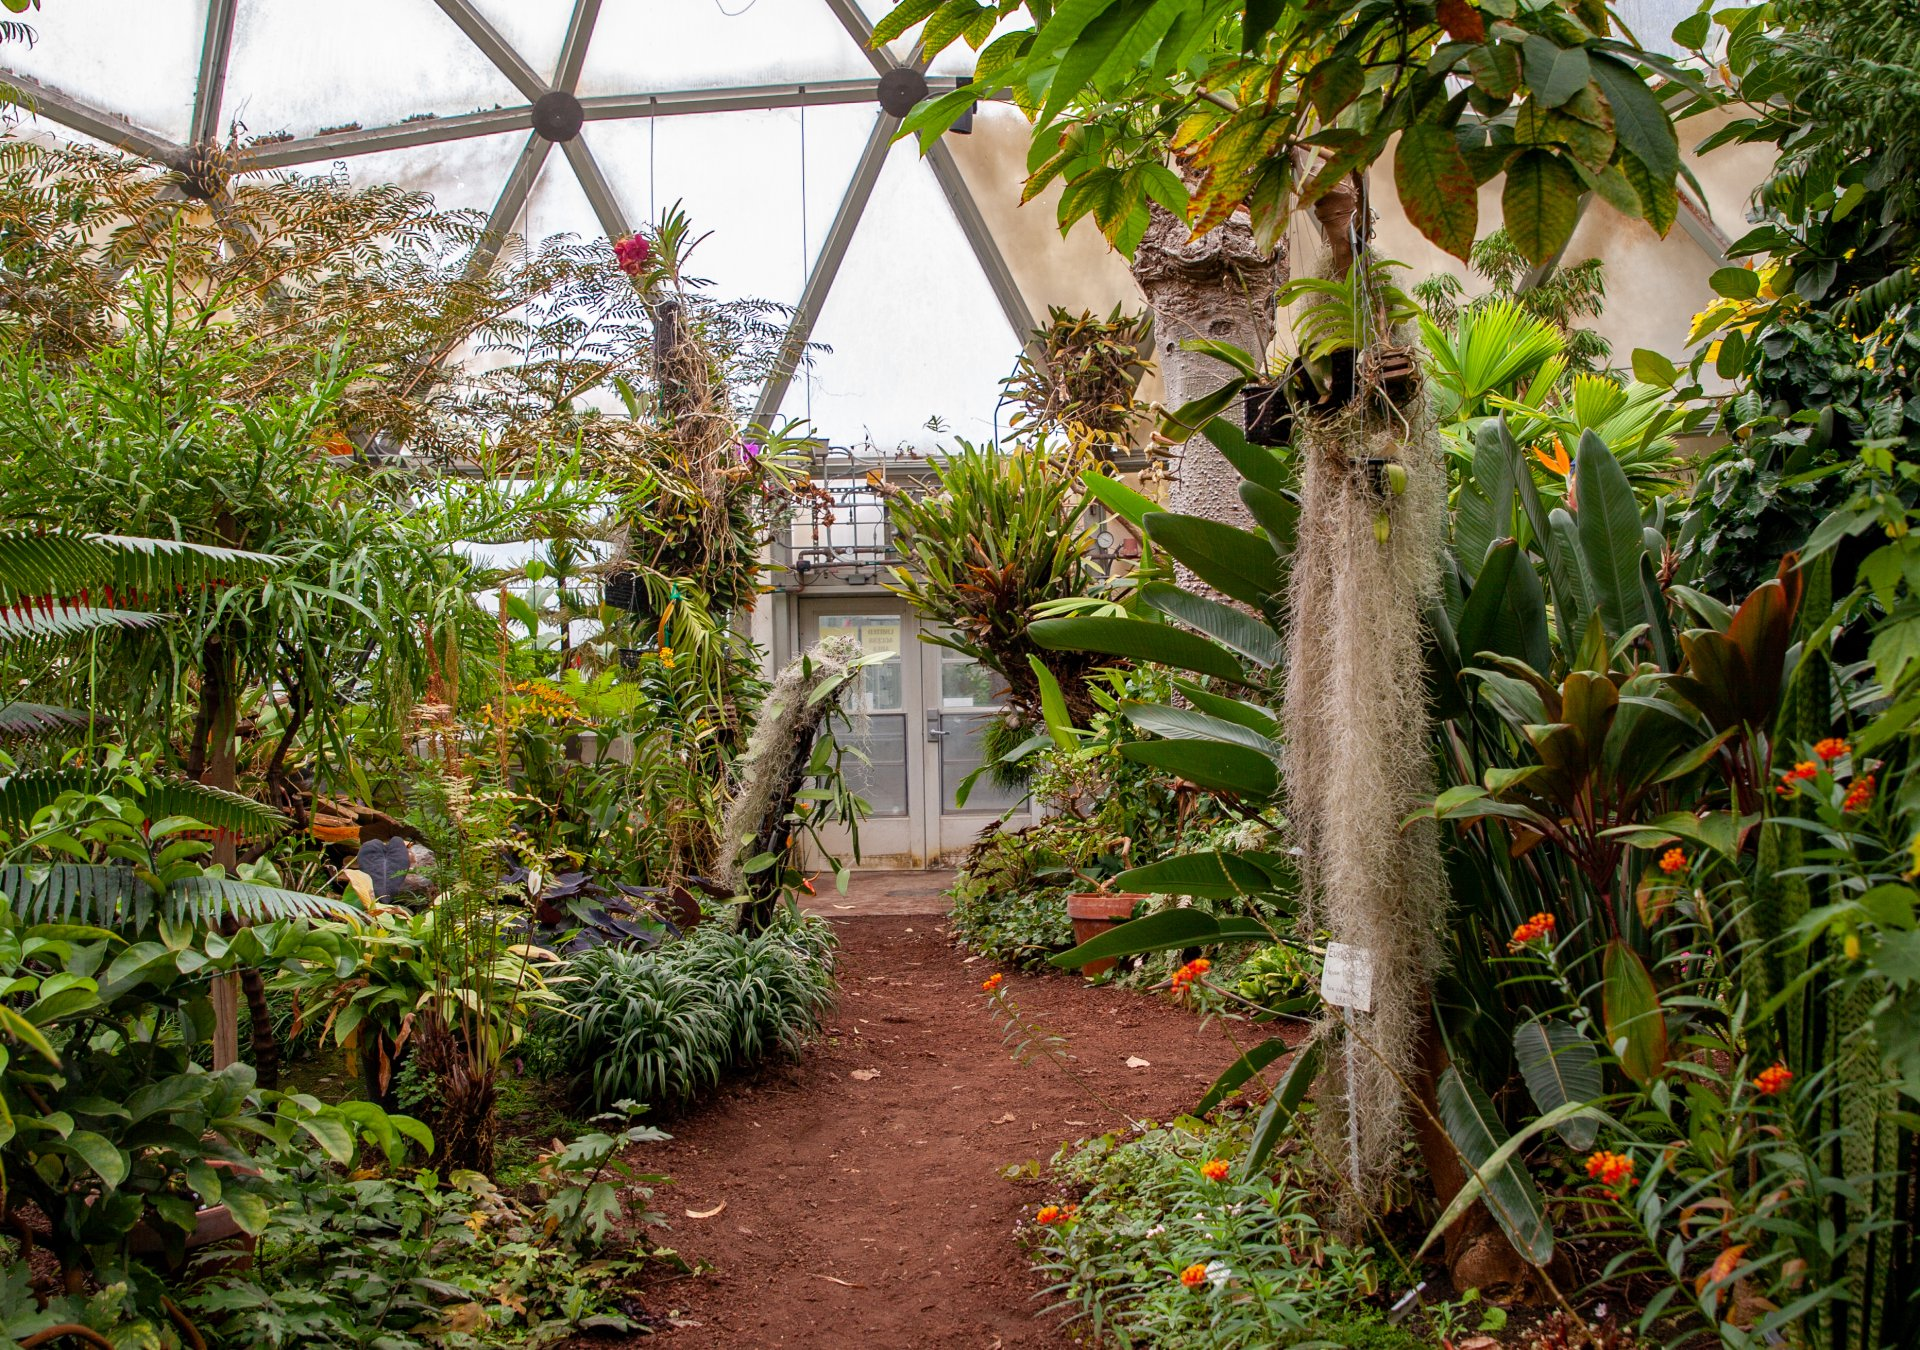 Inside the Subtropical Dome at the Dennis K. Walker Greenhouse at Humboldt State University. | Photo by Deija Zavala